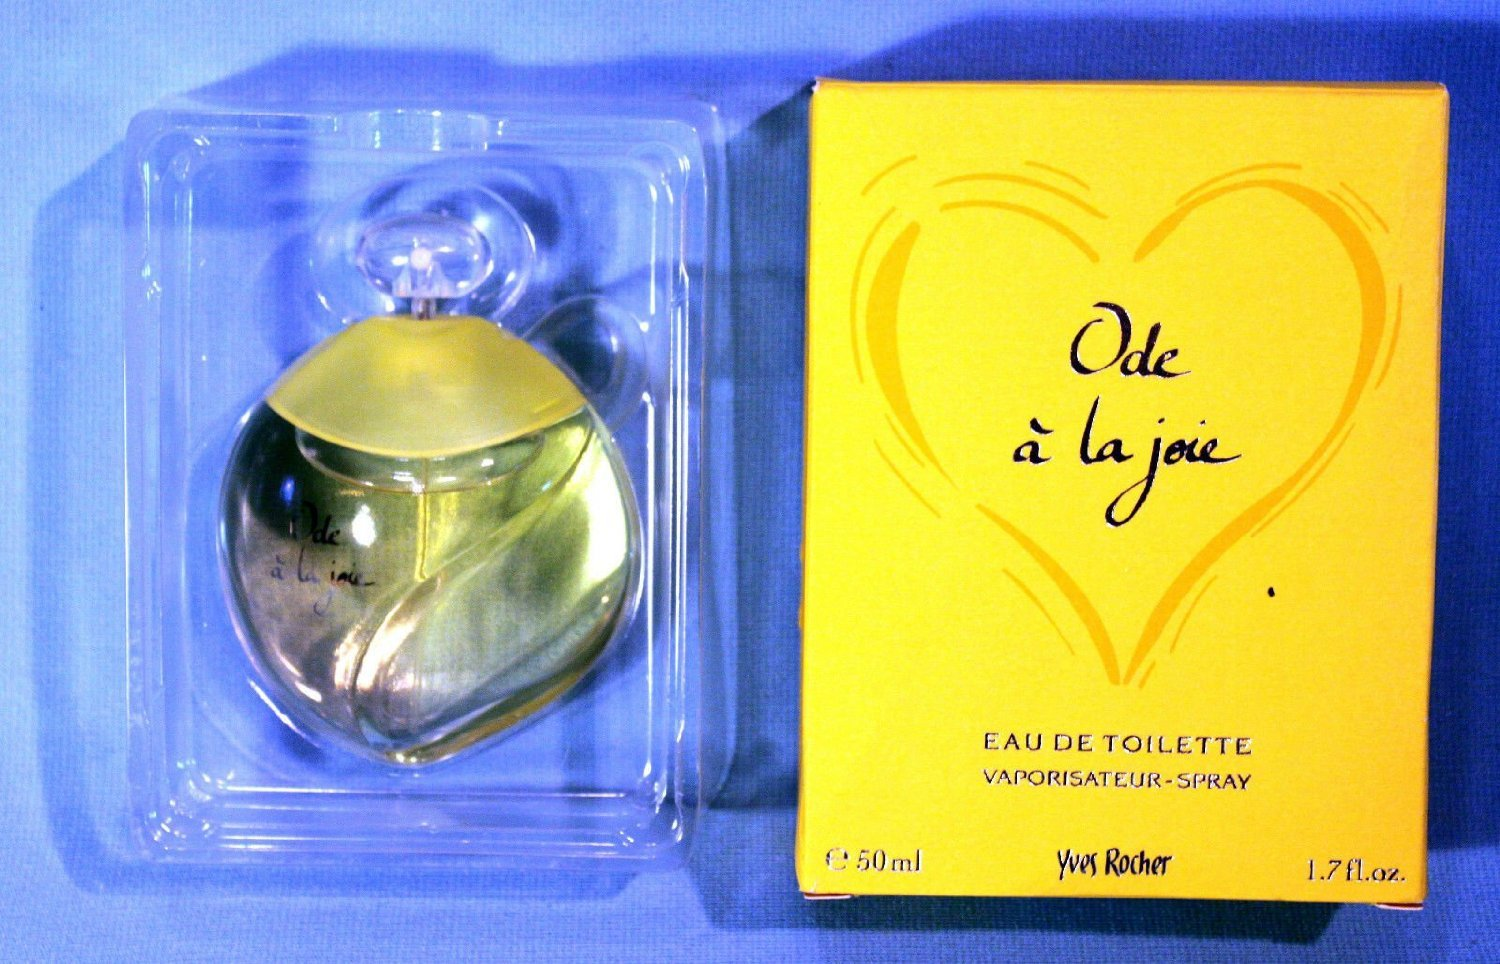 Primary image for Yves Rocher Ode a la Joie Toilette 1.7 fl oz 50 ml Brand New & Sealed in Box